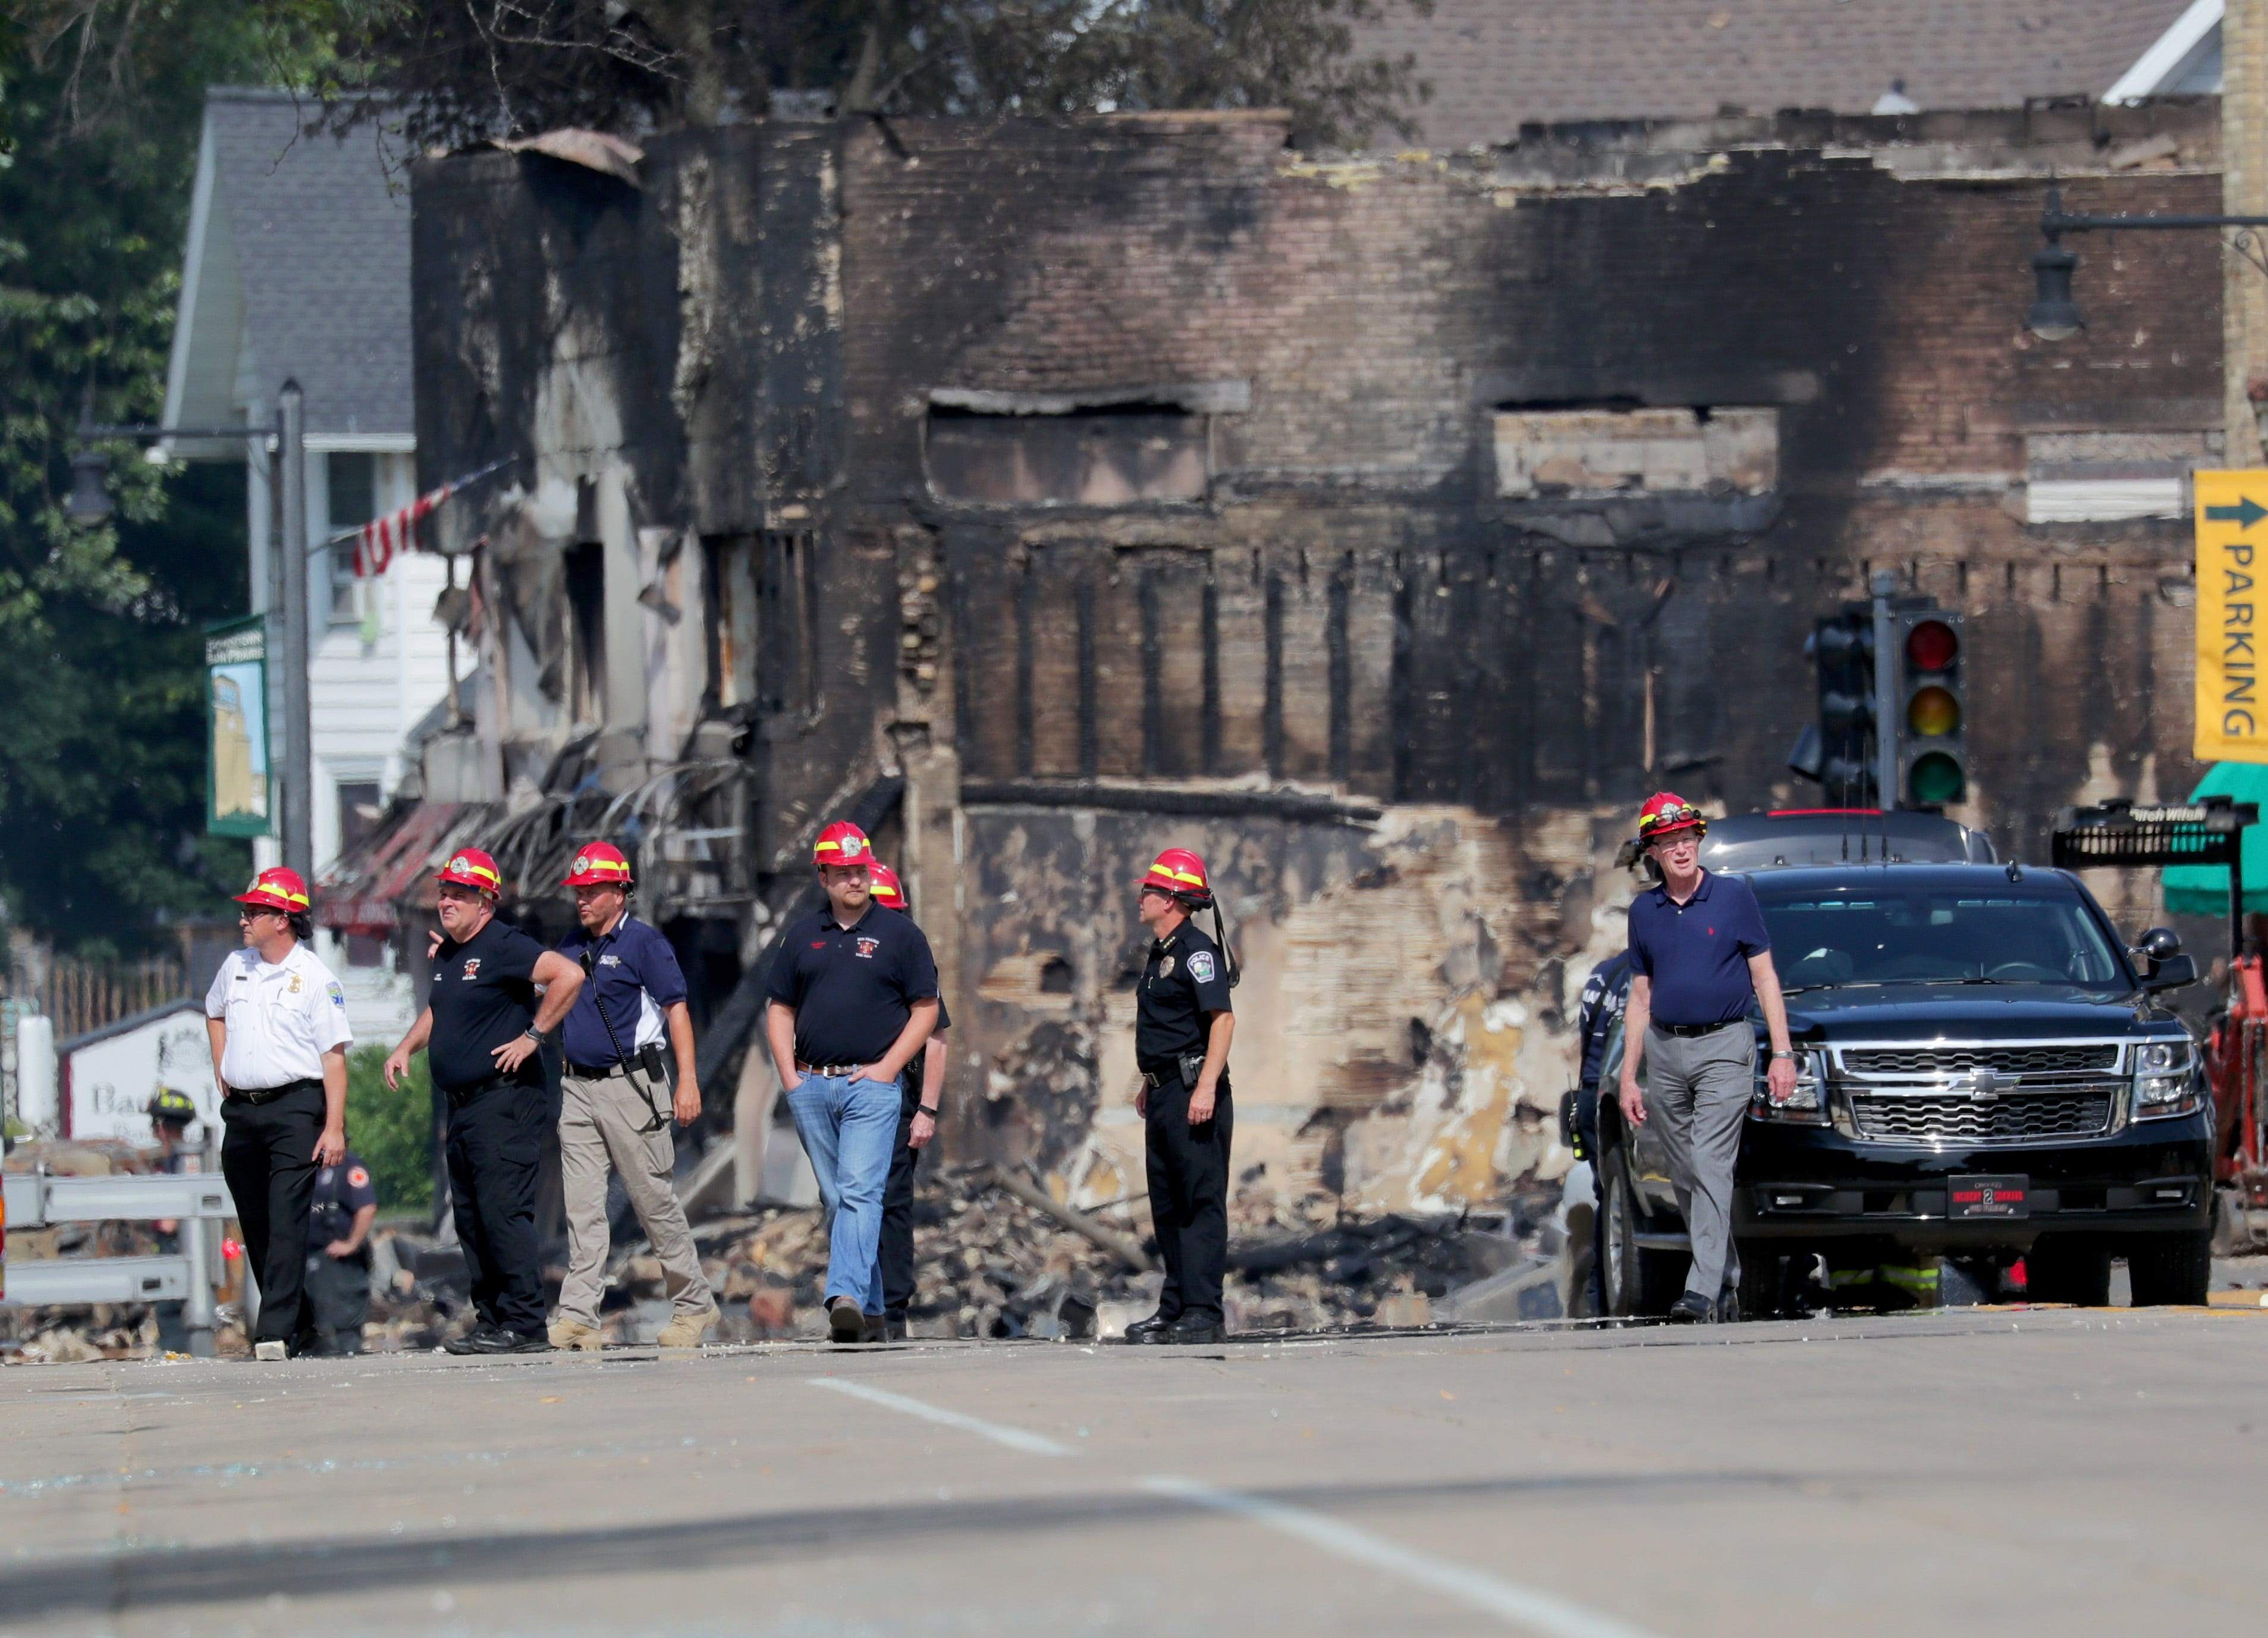 Officials mum on whether safety precautions were taken ahead of fatal Sun Prairie explosion | Milwaukee Journal Sentinel